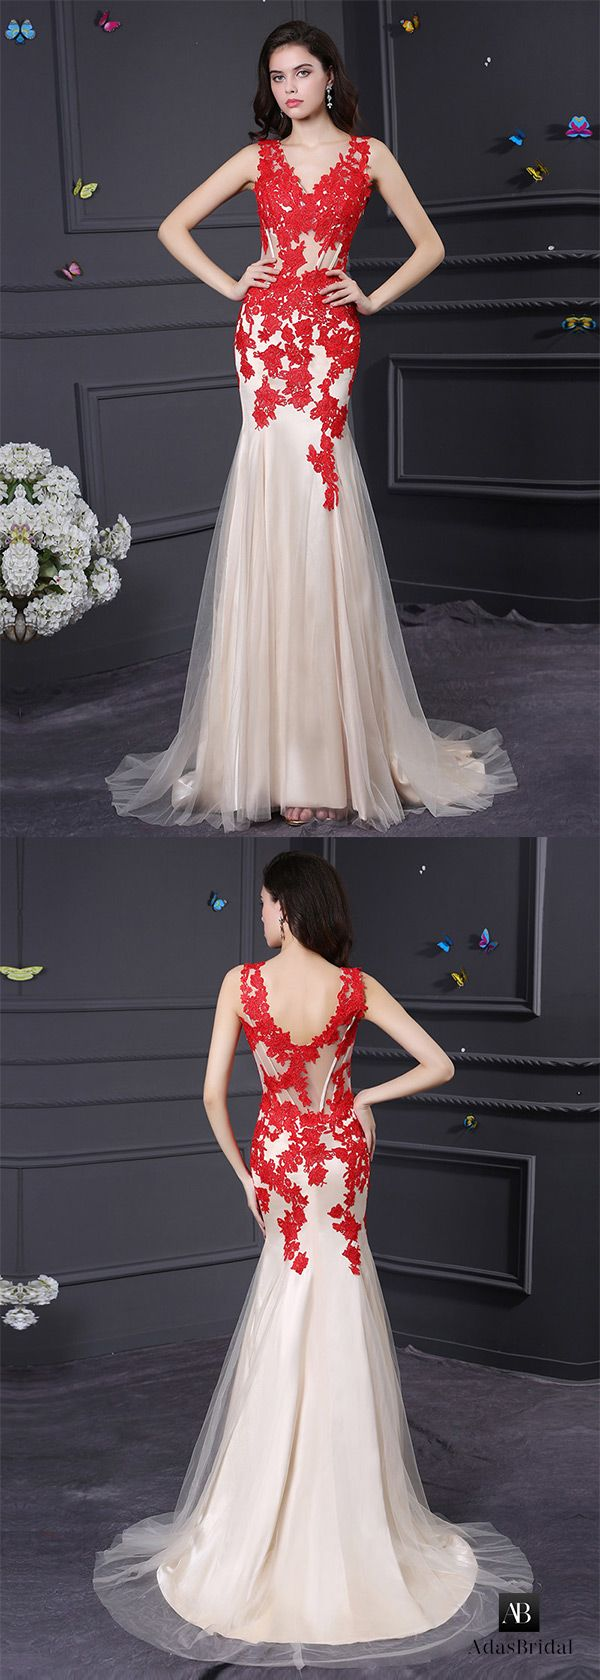 Exquisite tulle & stretch satin v-neck mermaid prom dresses. Have that alluring look in this dress. (SOD43445) - Adasbridal.com